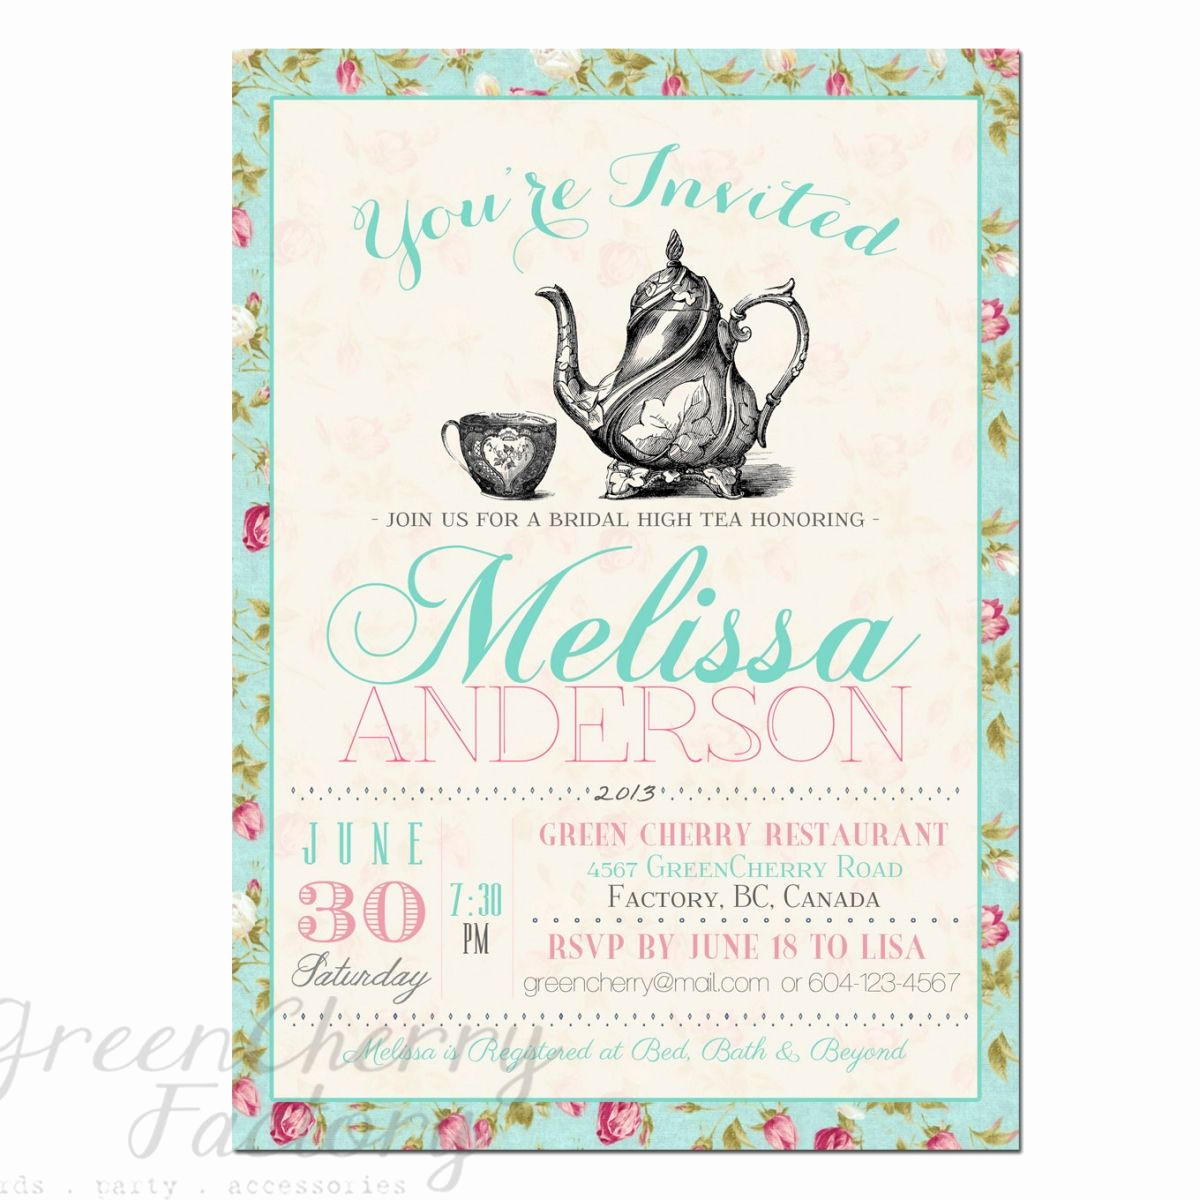 Tea Party Invitation Wording Beautiful Tea Party Invitation Templates to Print